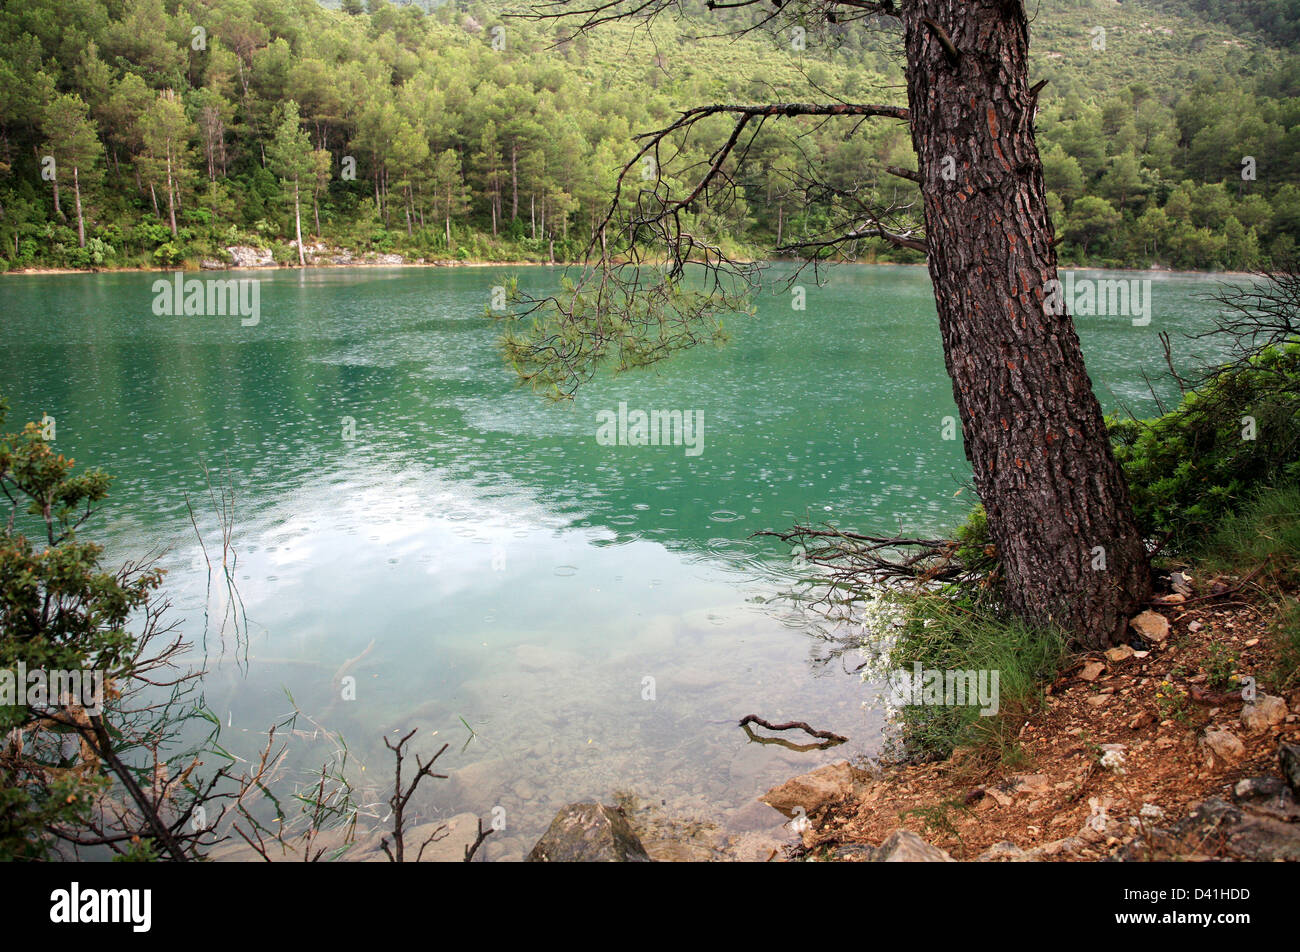 Pine tree on background green lake, Spain - Stock Image